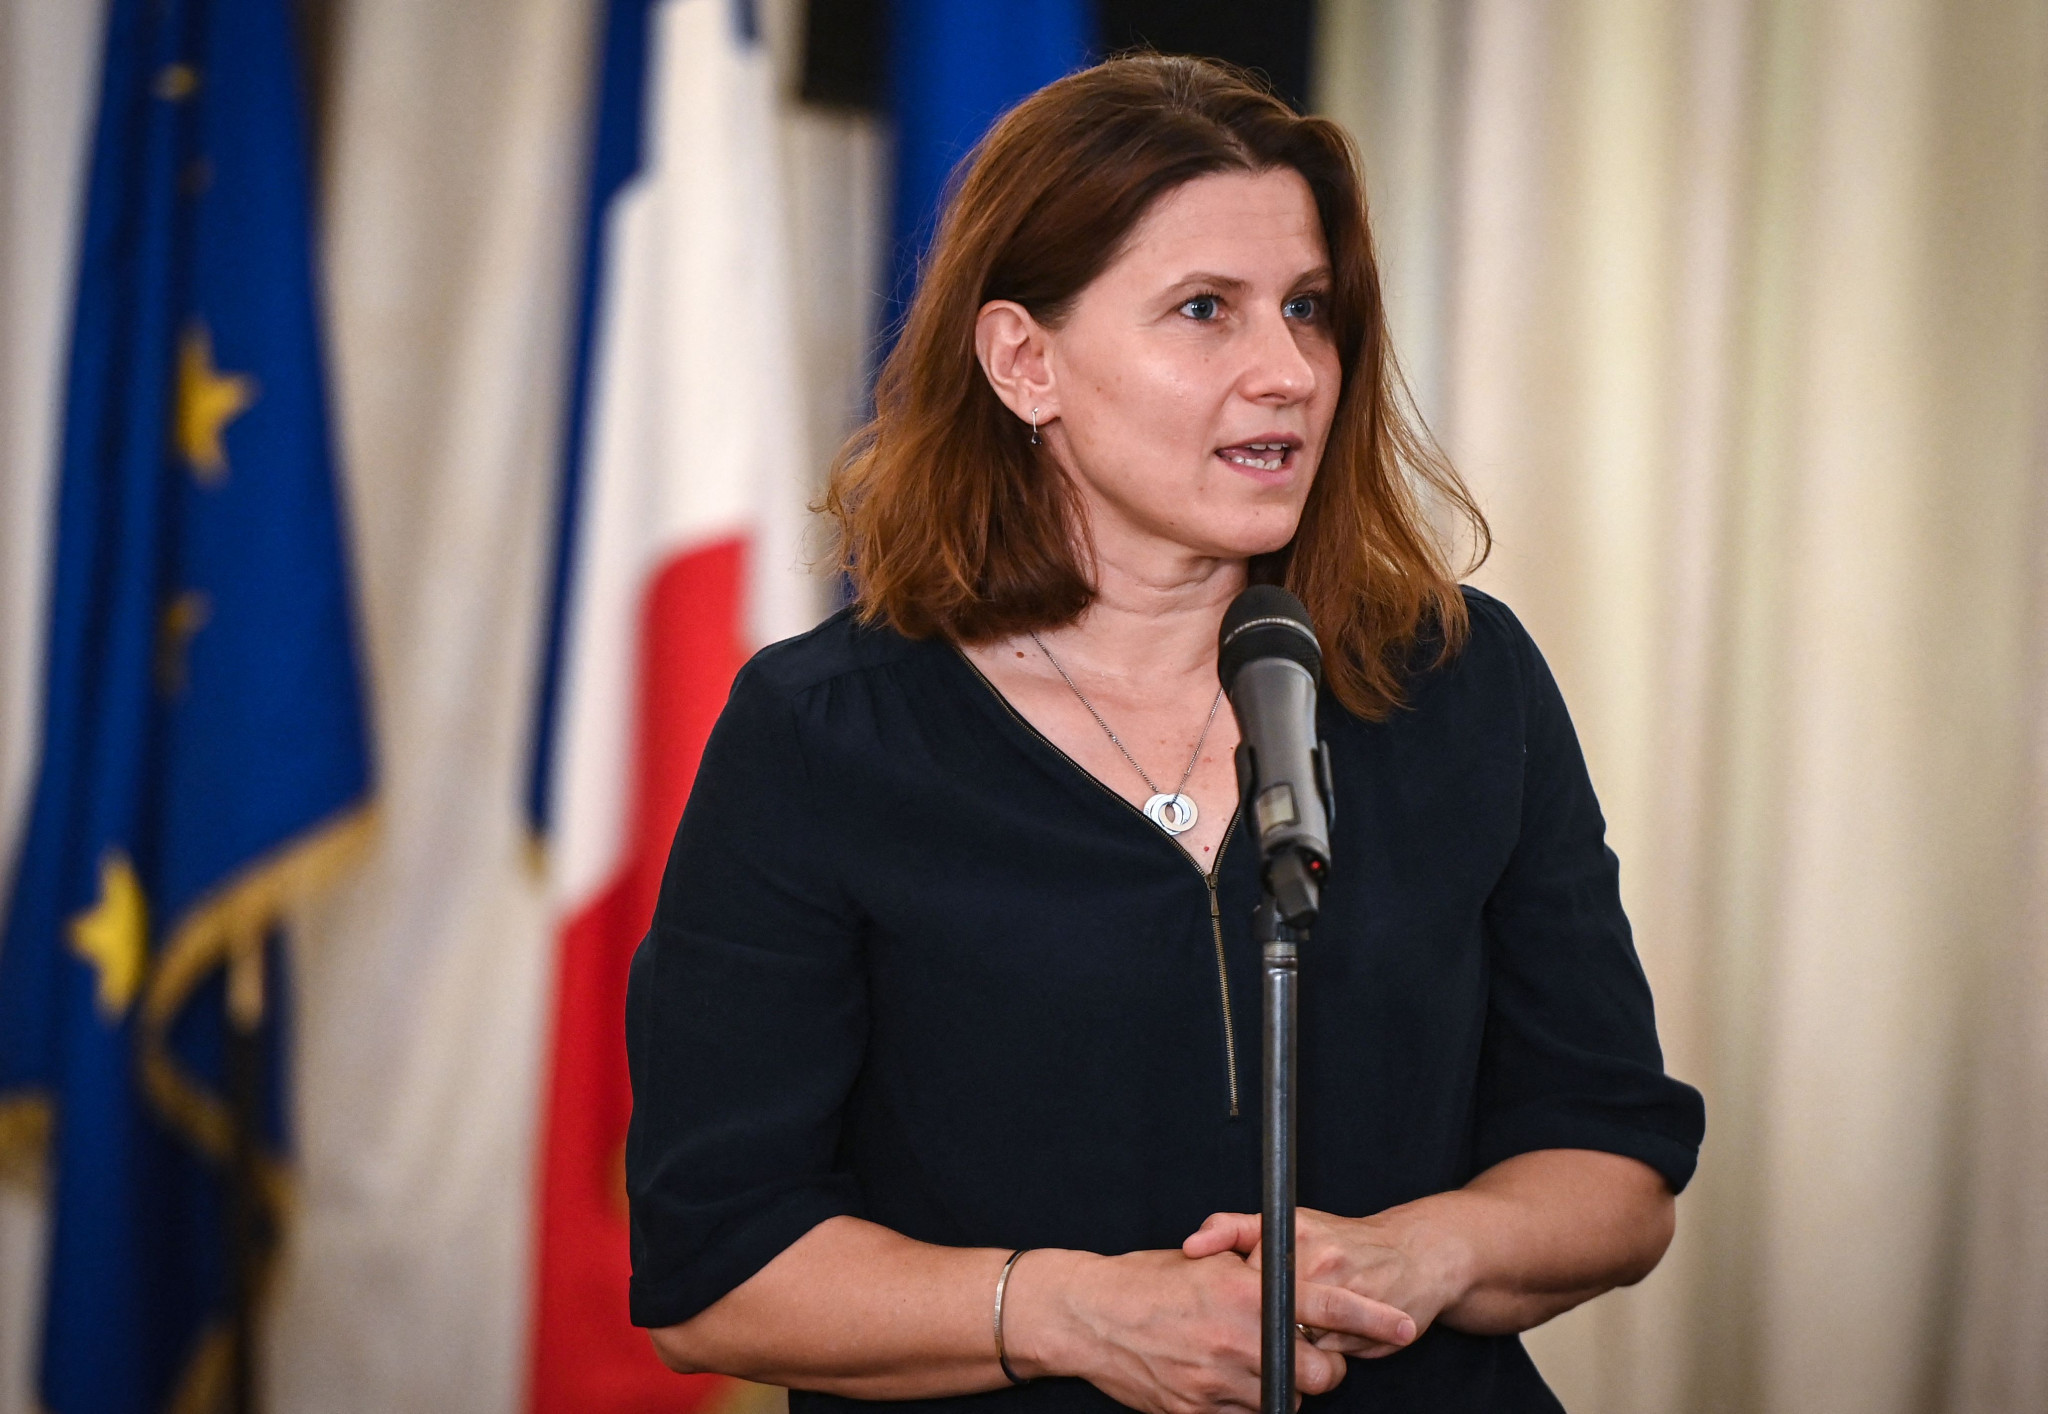 French sport leaders pledge to promote gender equality ahead of Paris 2024